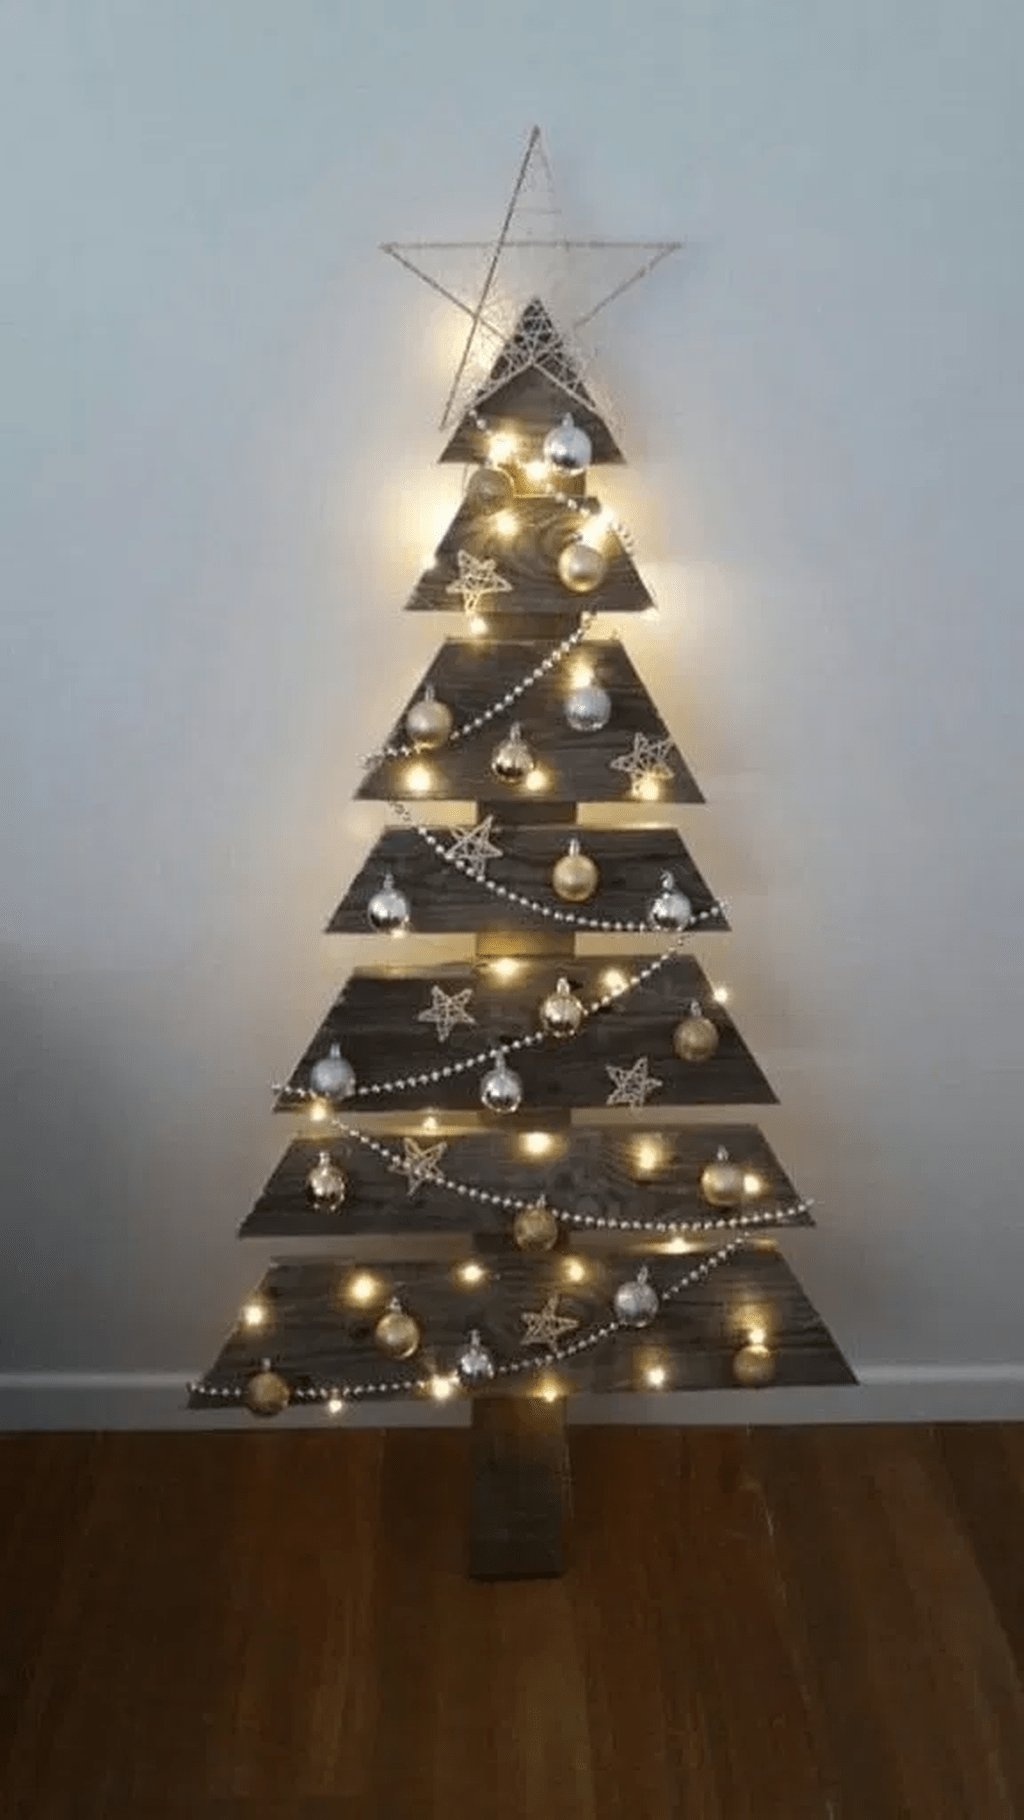 Amazing Christmas Lights Tree Decoration Ideas 15